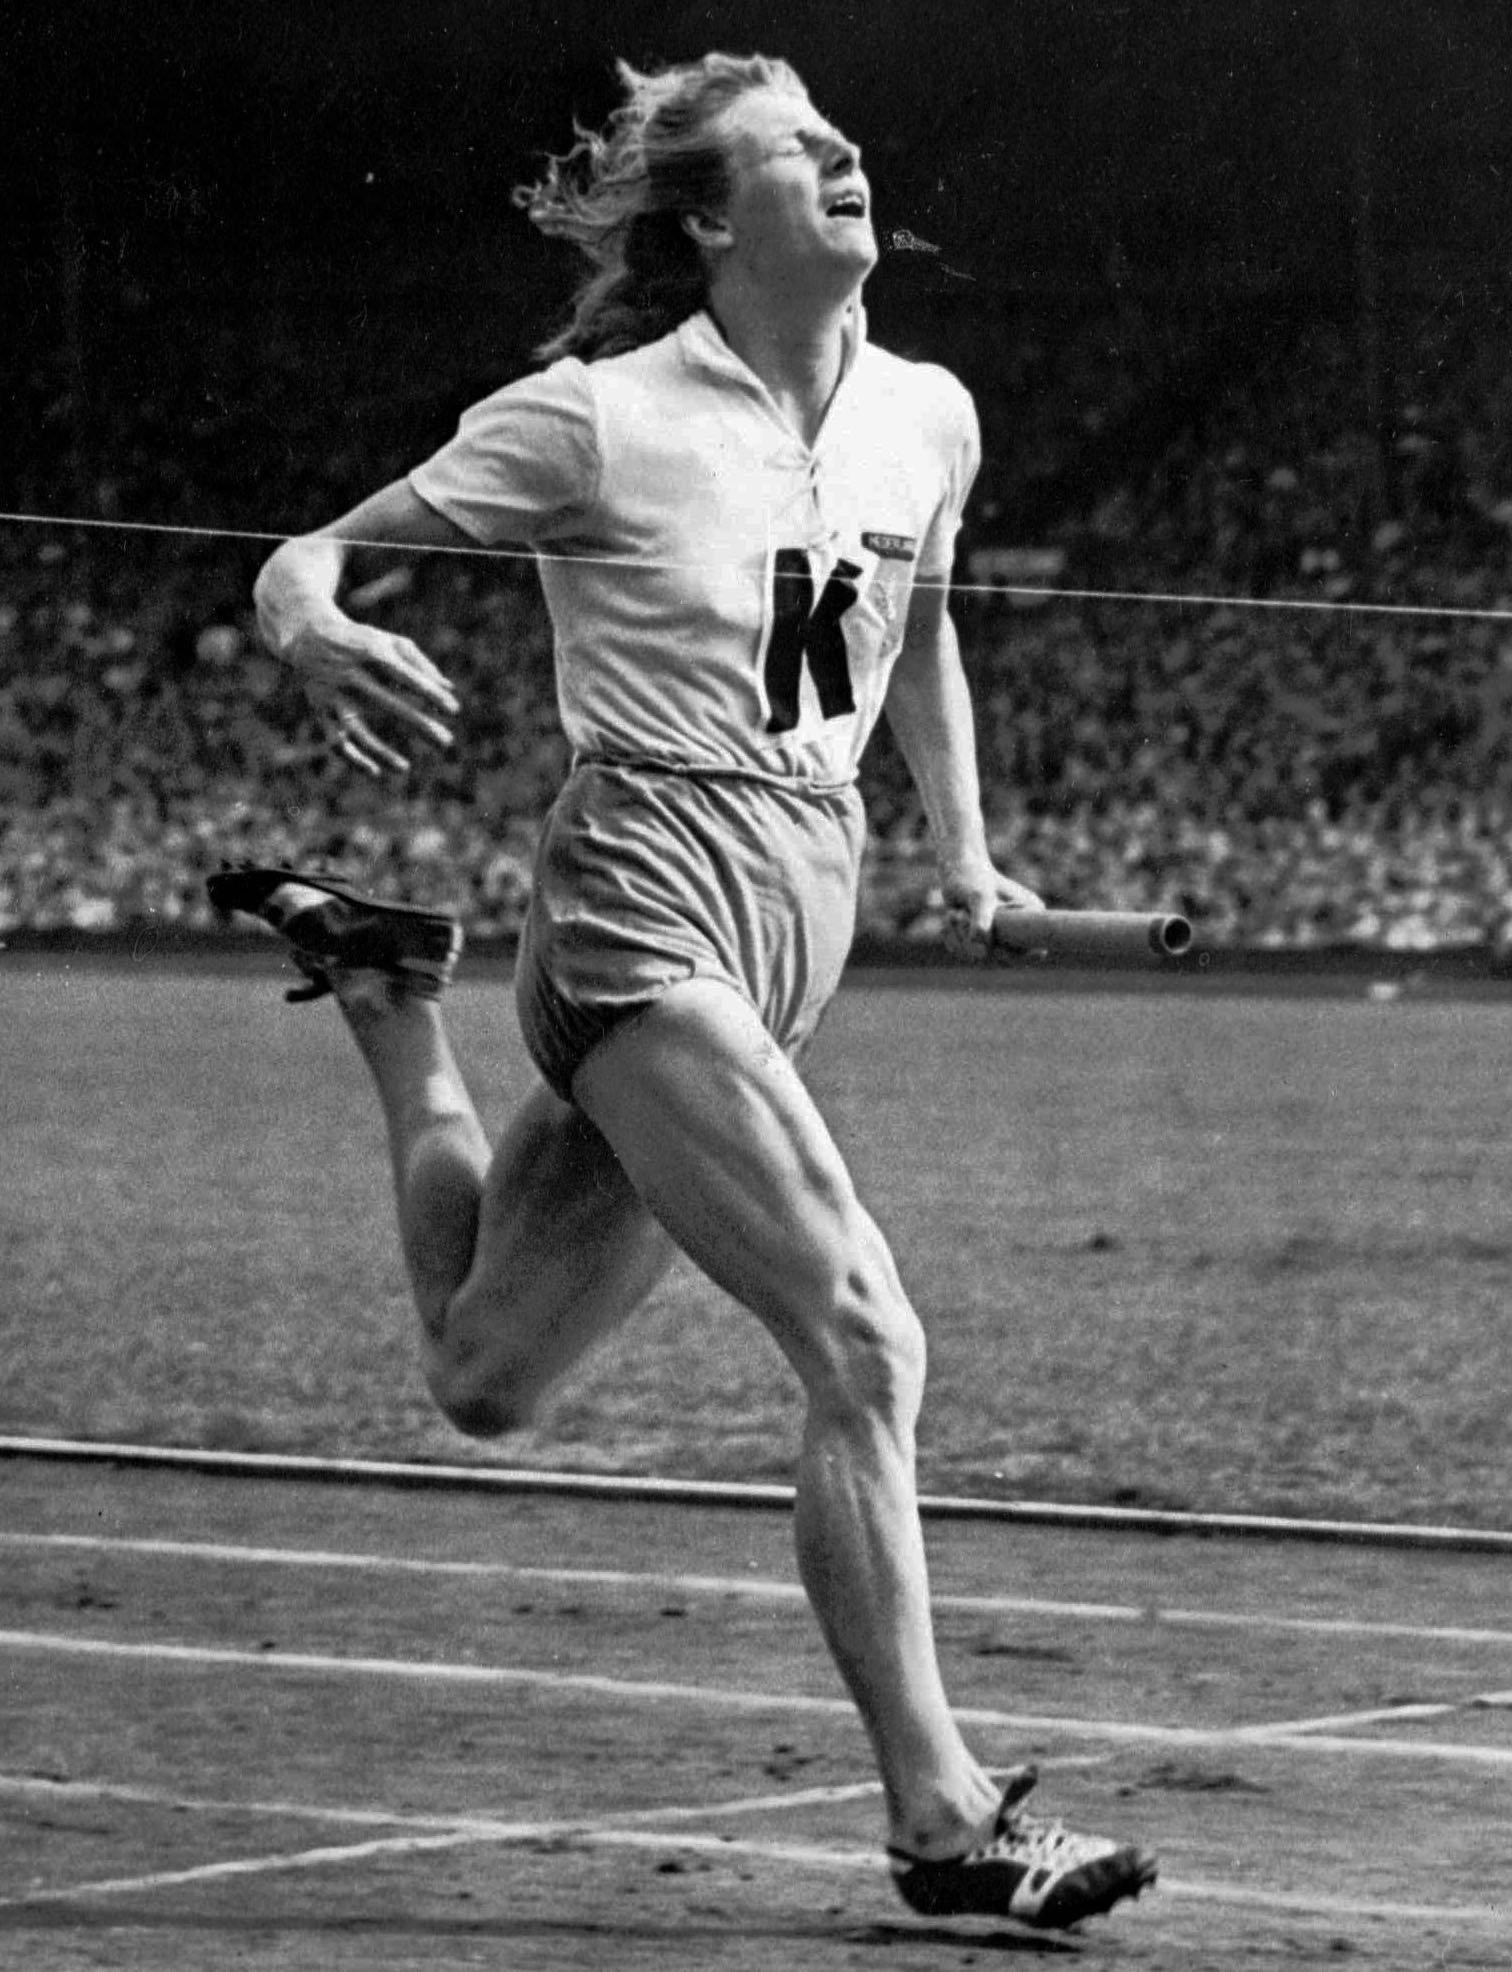 Blankers-Koen defied critics to make history in the 1948 London Olympics